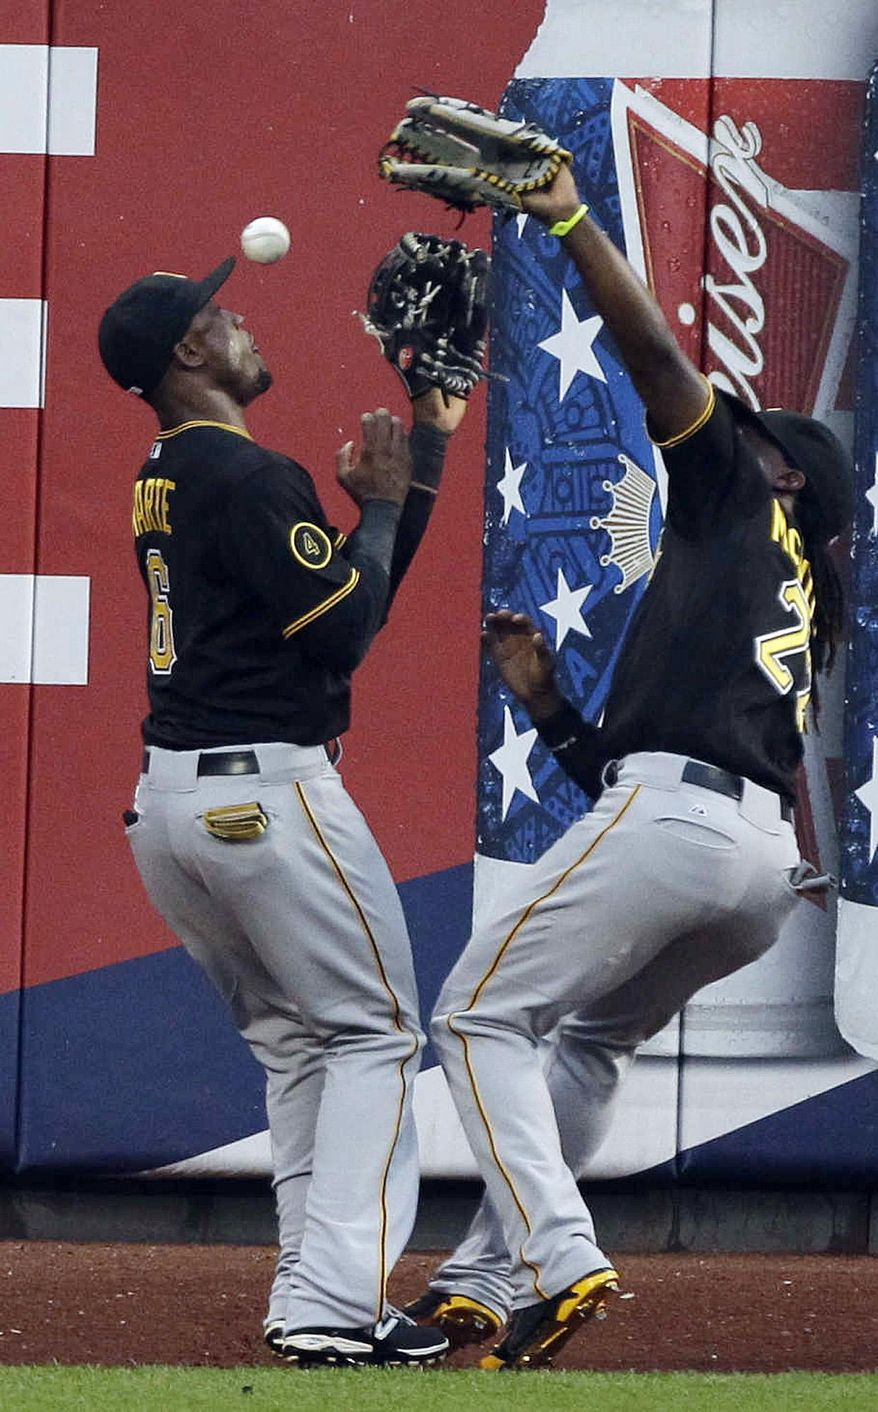 Pittsburgh Pirates left fielder Starling Marte (6) and Andrew McCutchen collide and lose control of a ball hit by New York Mets' Daniel Murphy during the first inning of a baseball game Tuesday, May 27, 2014, in New York. (AP Photo/Frank Franklin II)